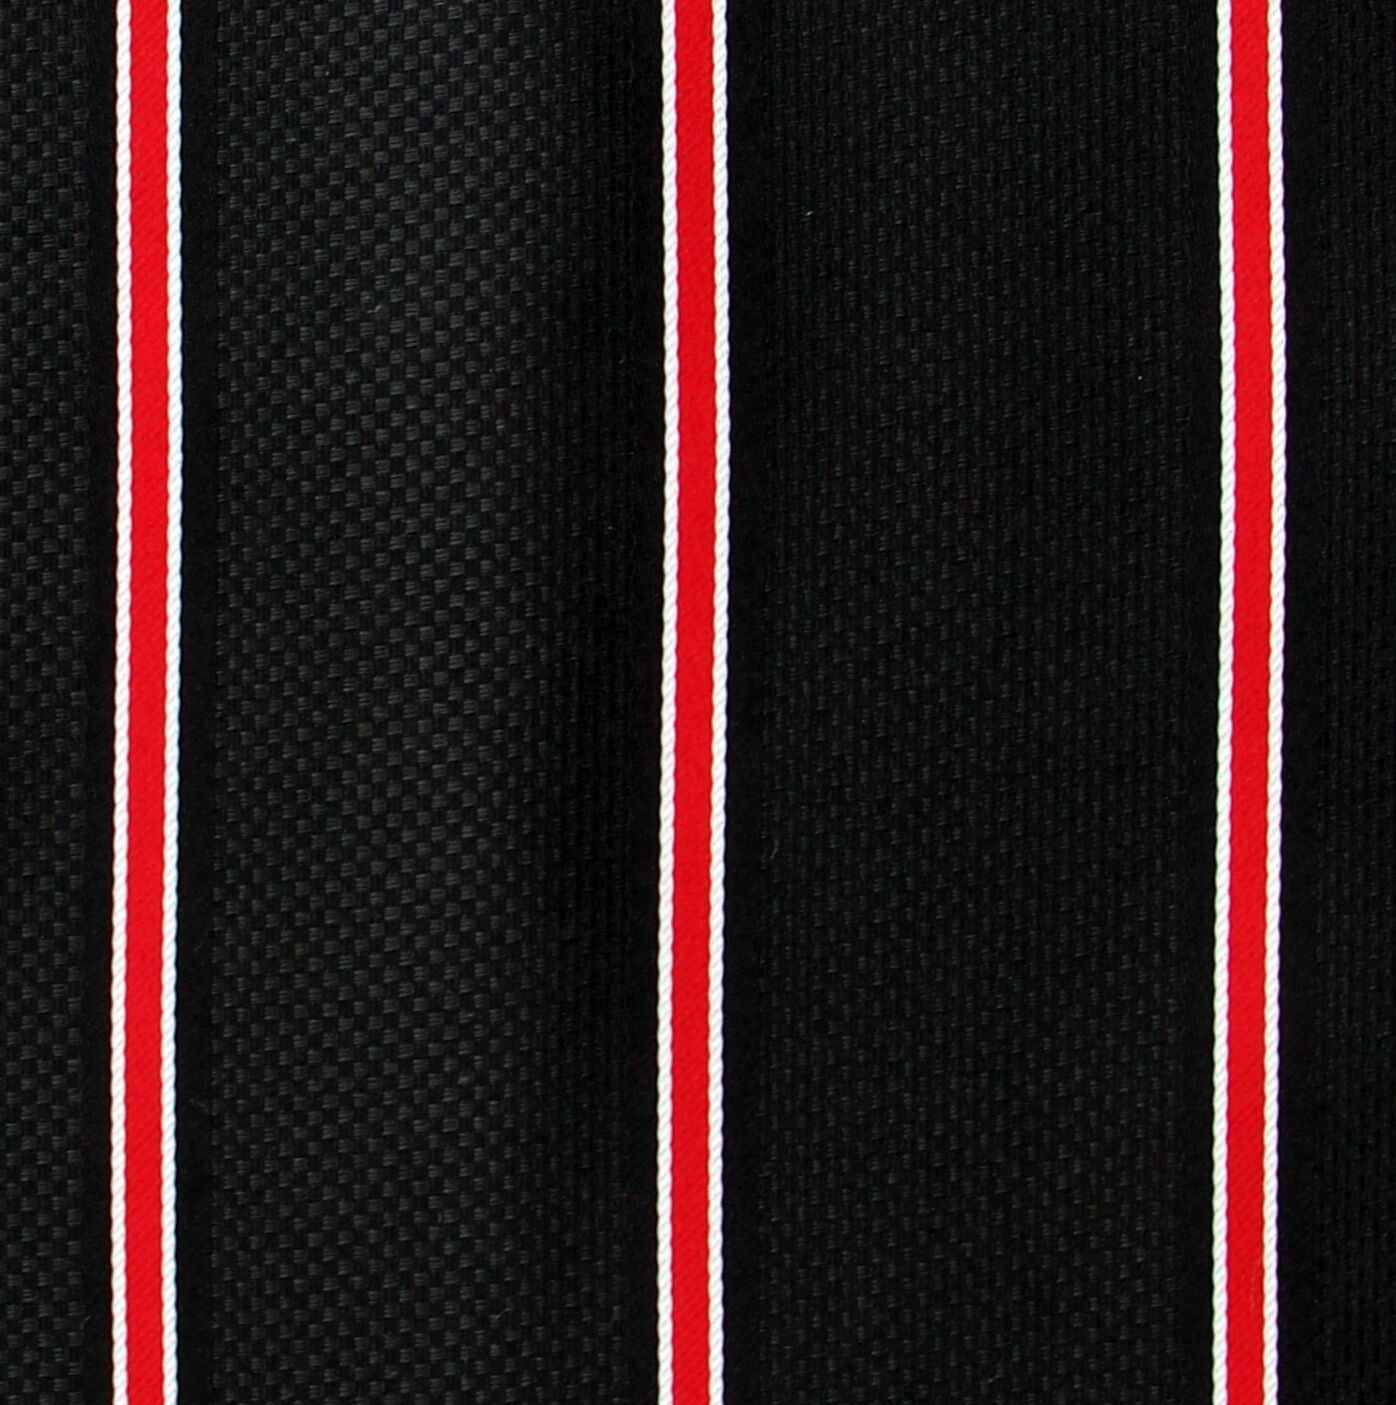 Men's Striped Pocket Square Dress Handkerchief Suit Fashion Black & Red Hanky  image 2